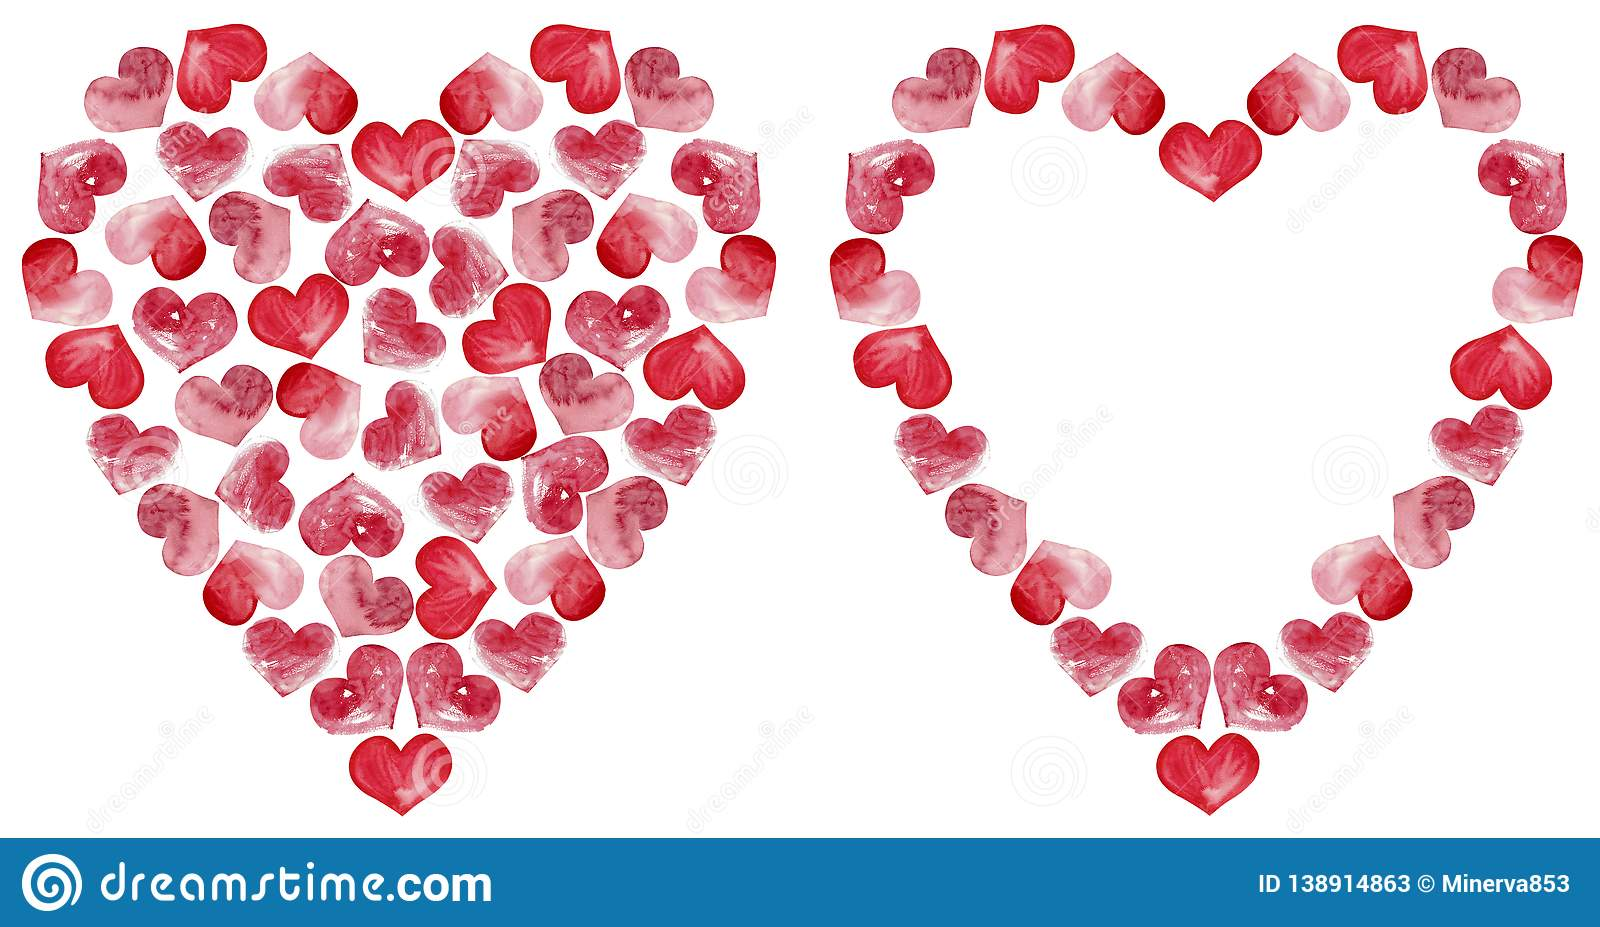 Hearts clipart. Valentine`s day frame. Watercolor pink hearts. Strawberry like.